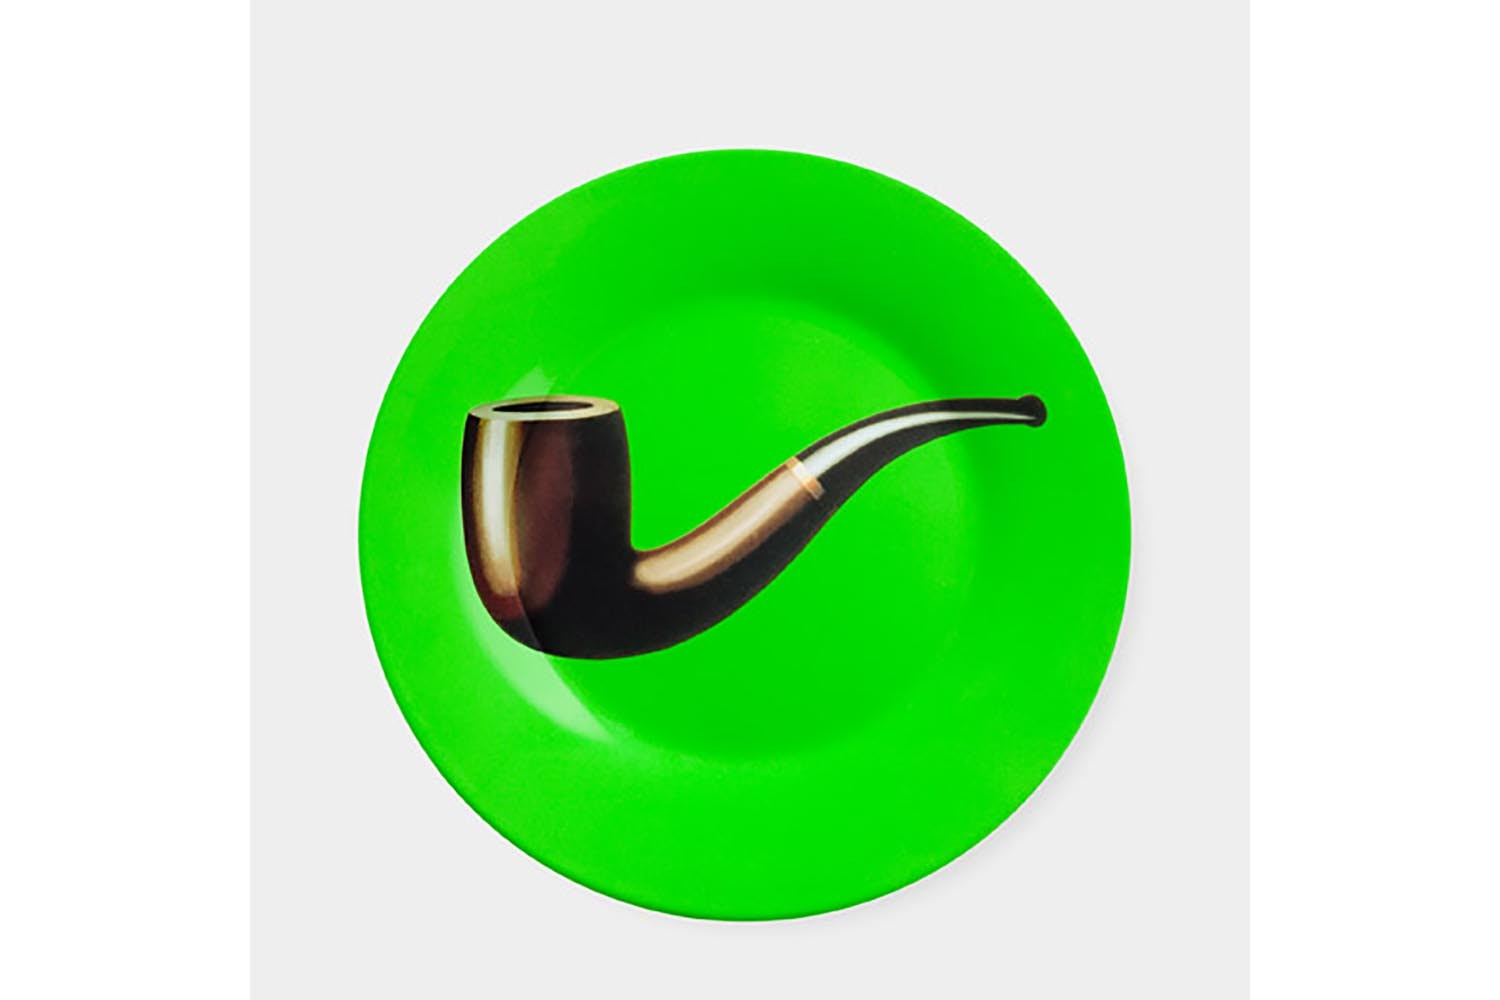 Magritte: Pipe Plate by Rene Magritte for MoMA